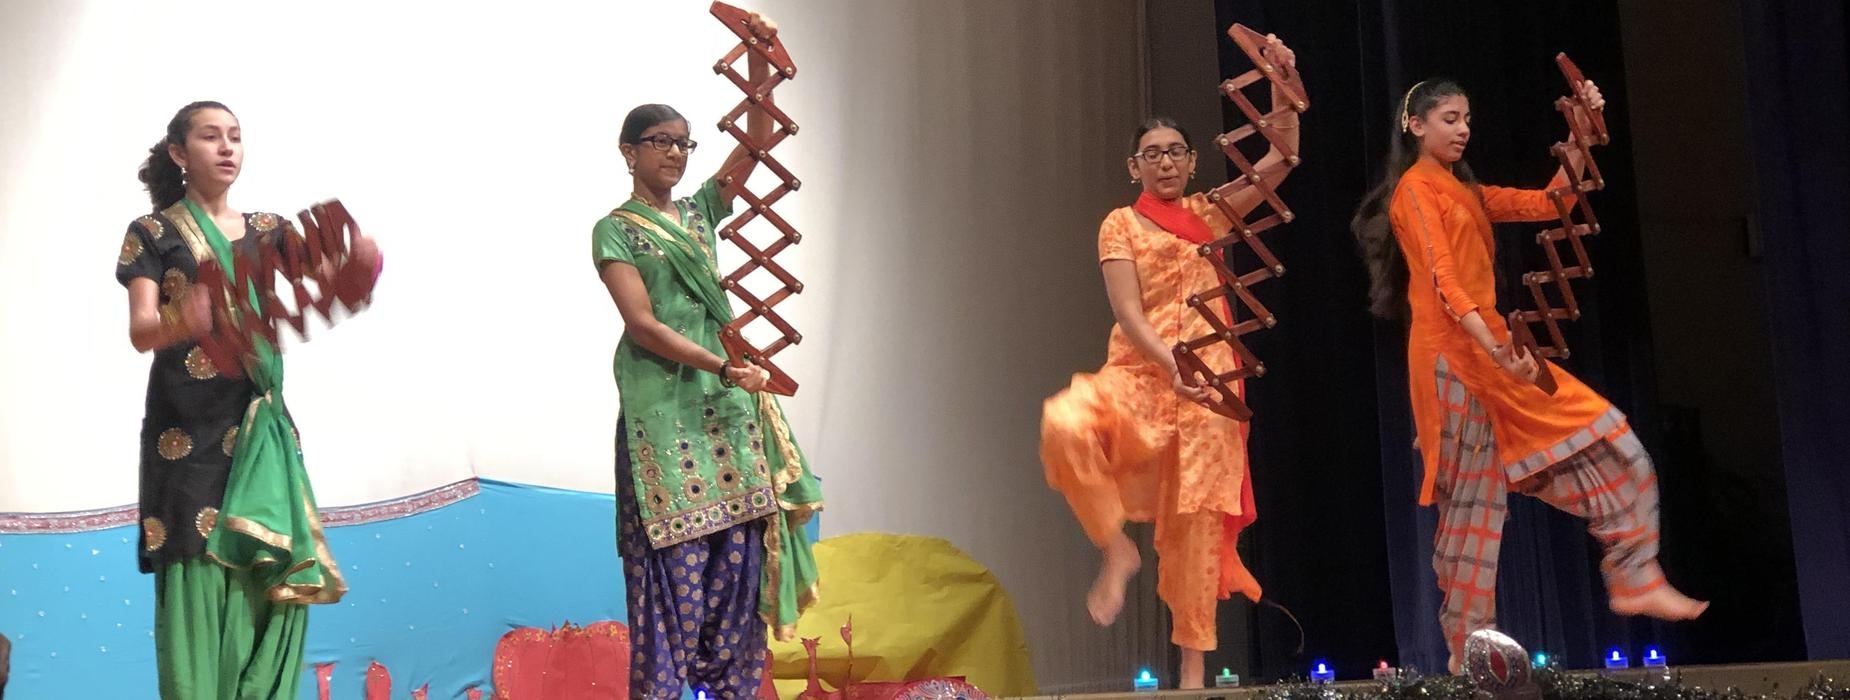 Students dance on stage.